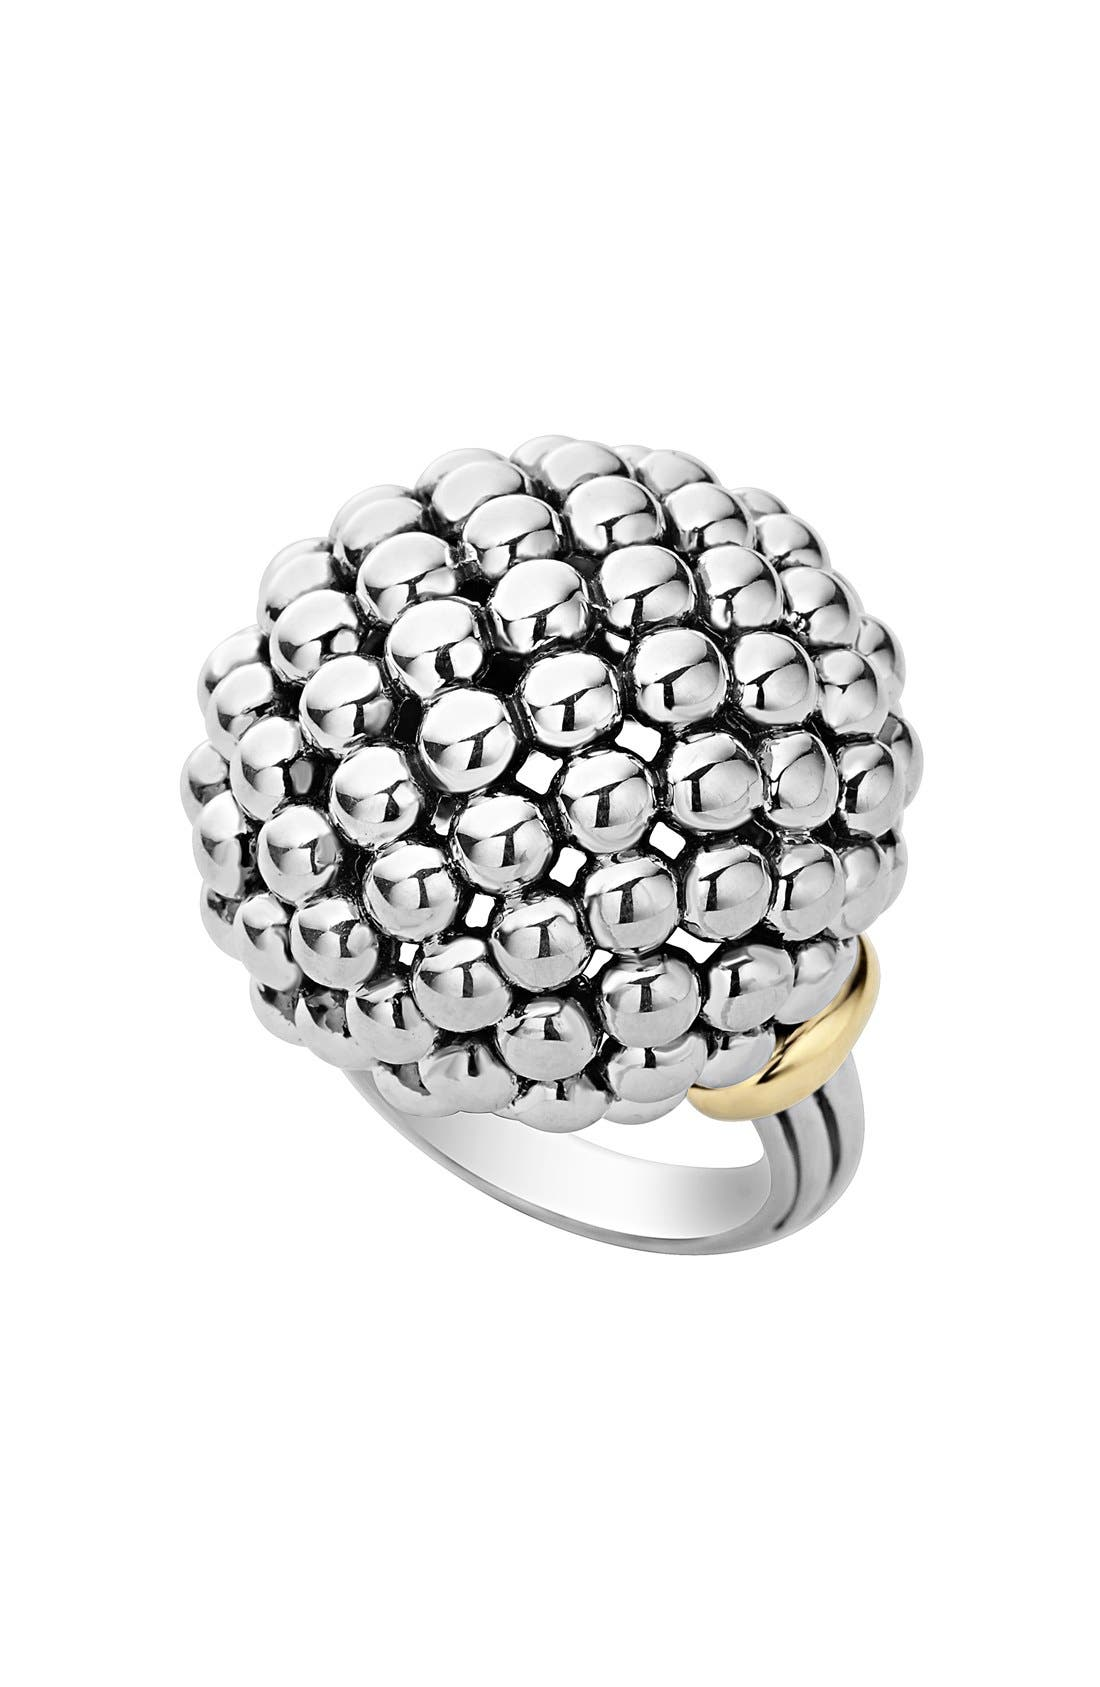 'Caviar Forever' Large Dome Ring,                             Main thumbnail 1, color,                             040